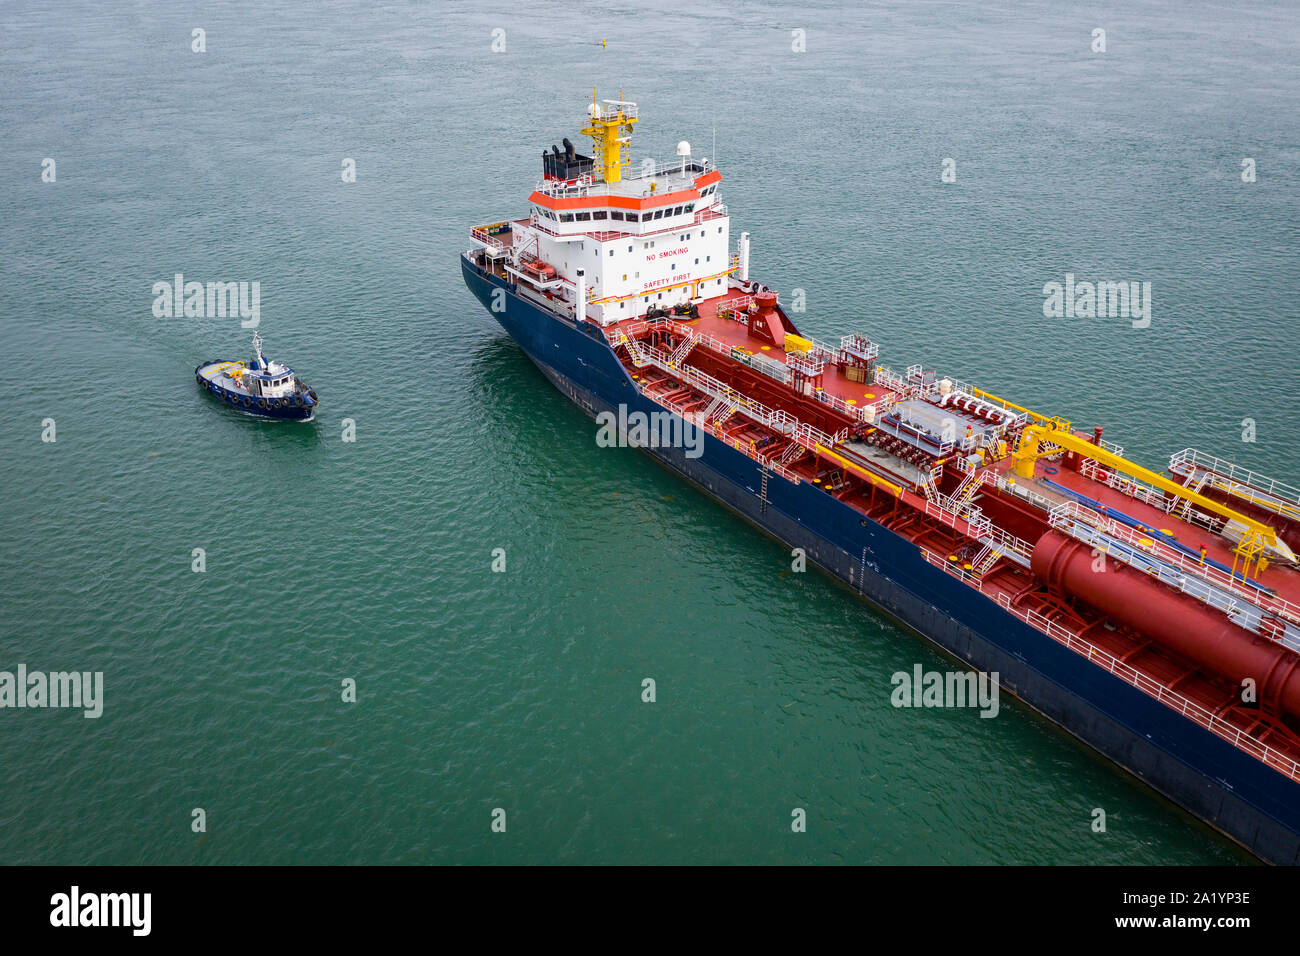 Chemical and oil products tanker anchored at the Port of Montreal in the St. Lawrence River. Stock Photo